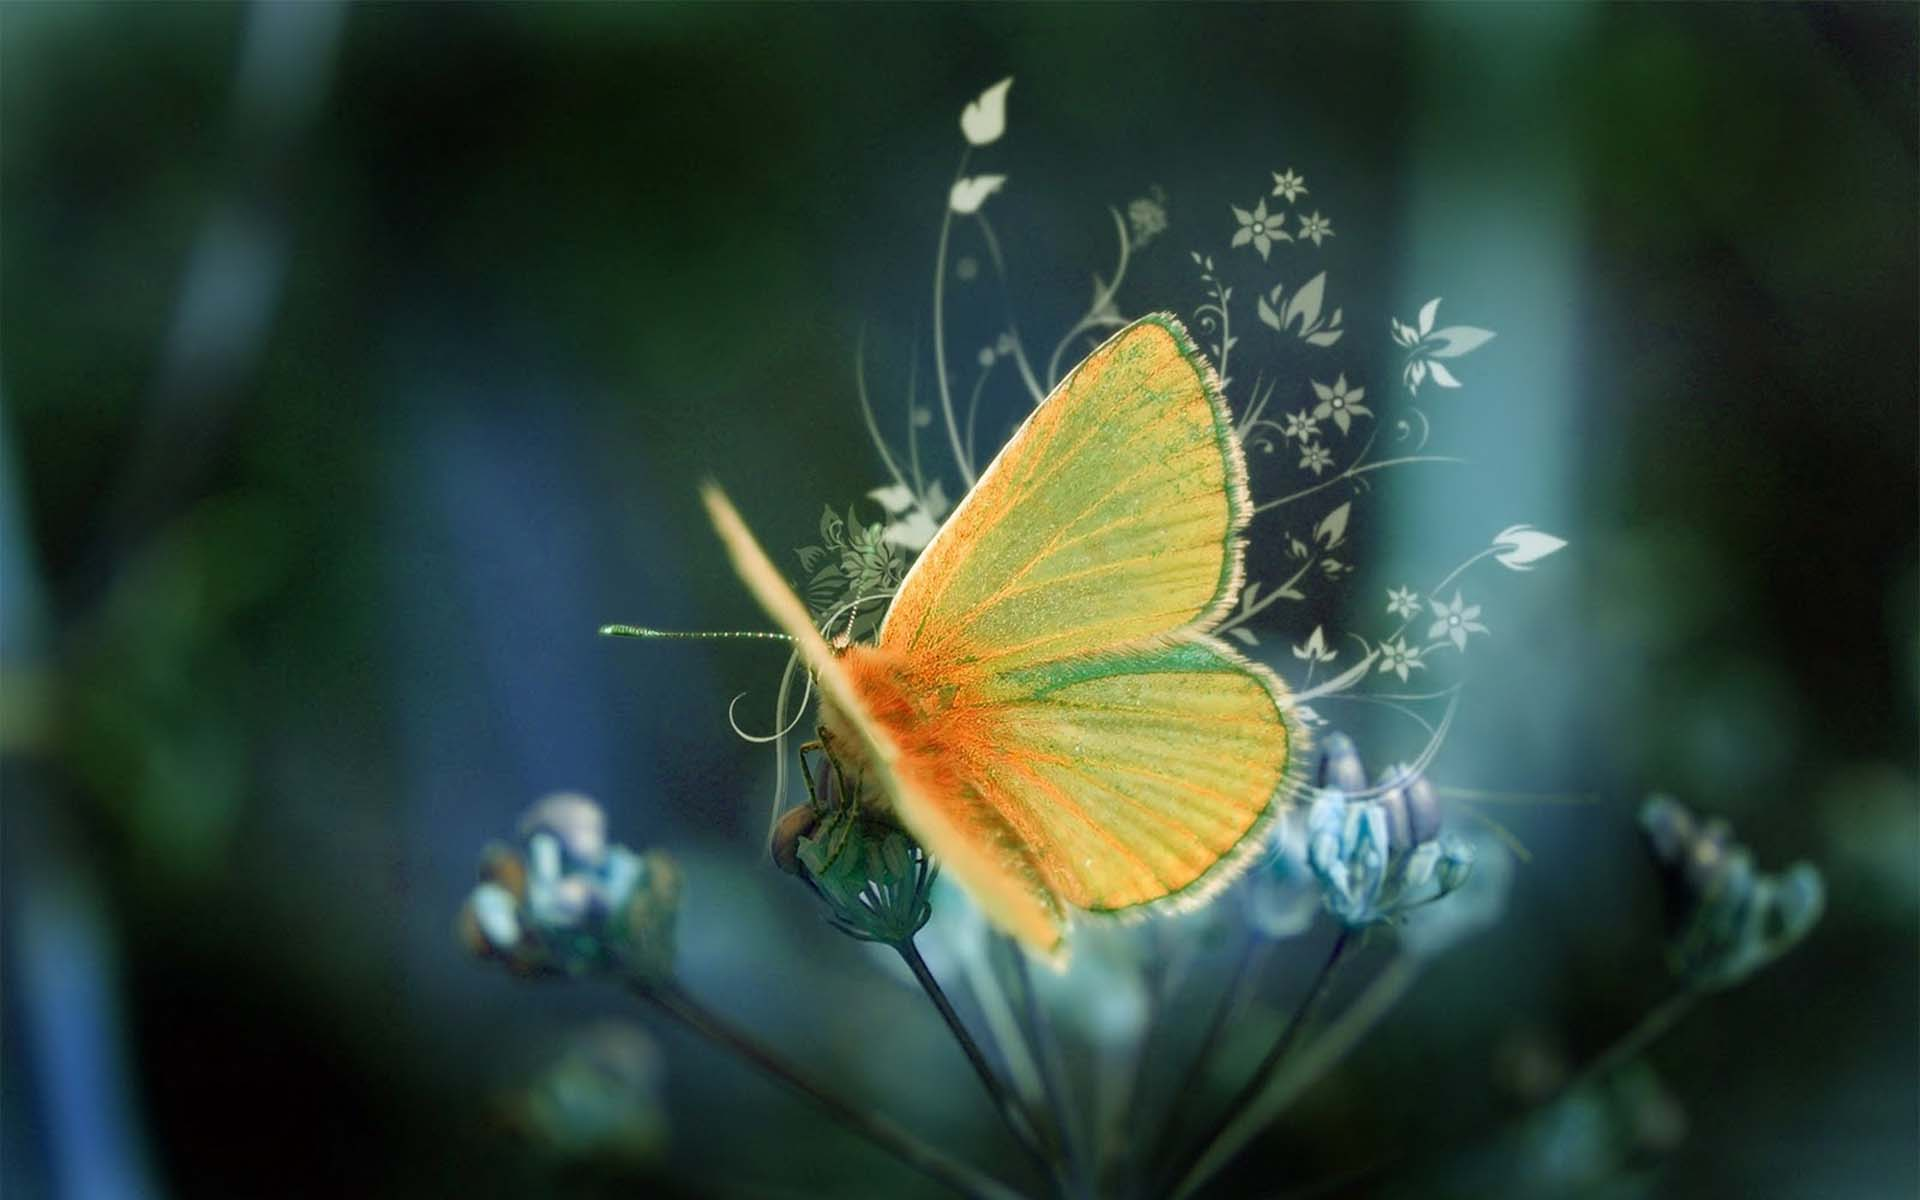 https://sherowallpapers.files.wordpress.com/2012/01/butterfly-beautiful-wallpaper.jpg